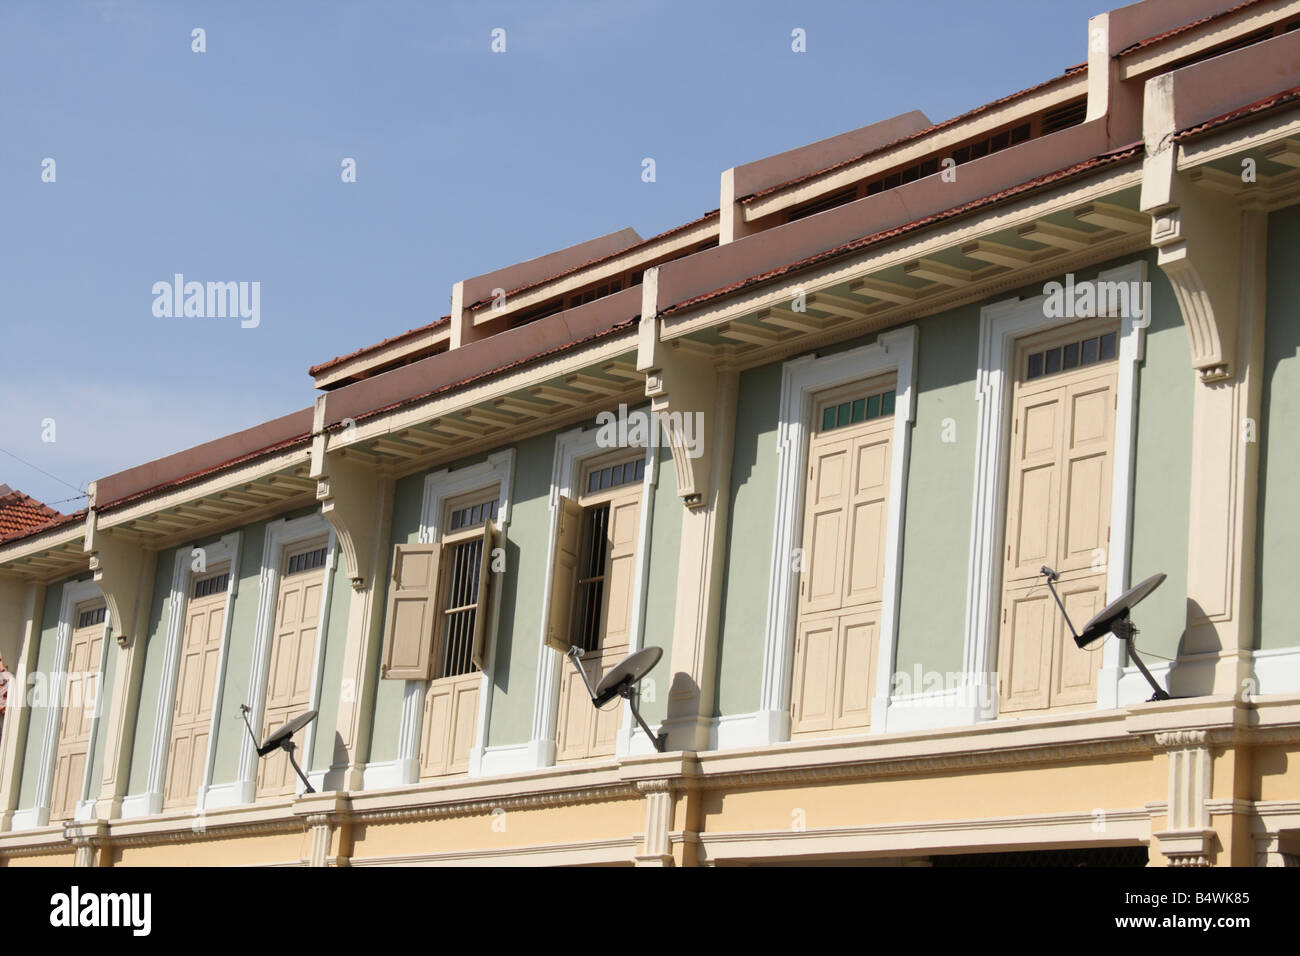 row of window of colonial shophouses in Penang, Malaysia  each having a satellite dish - Stock Image